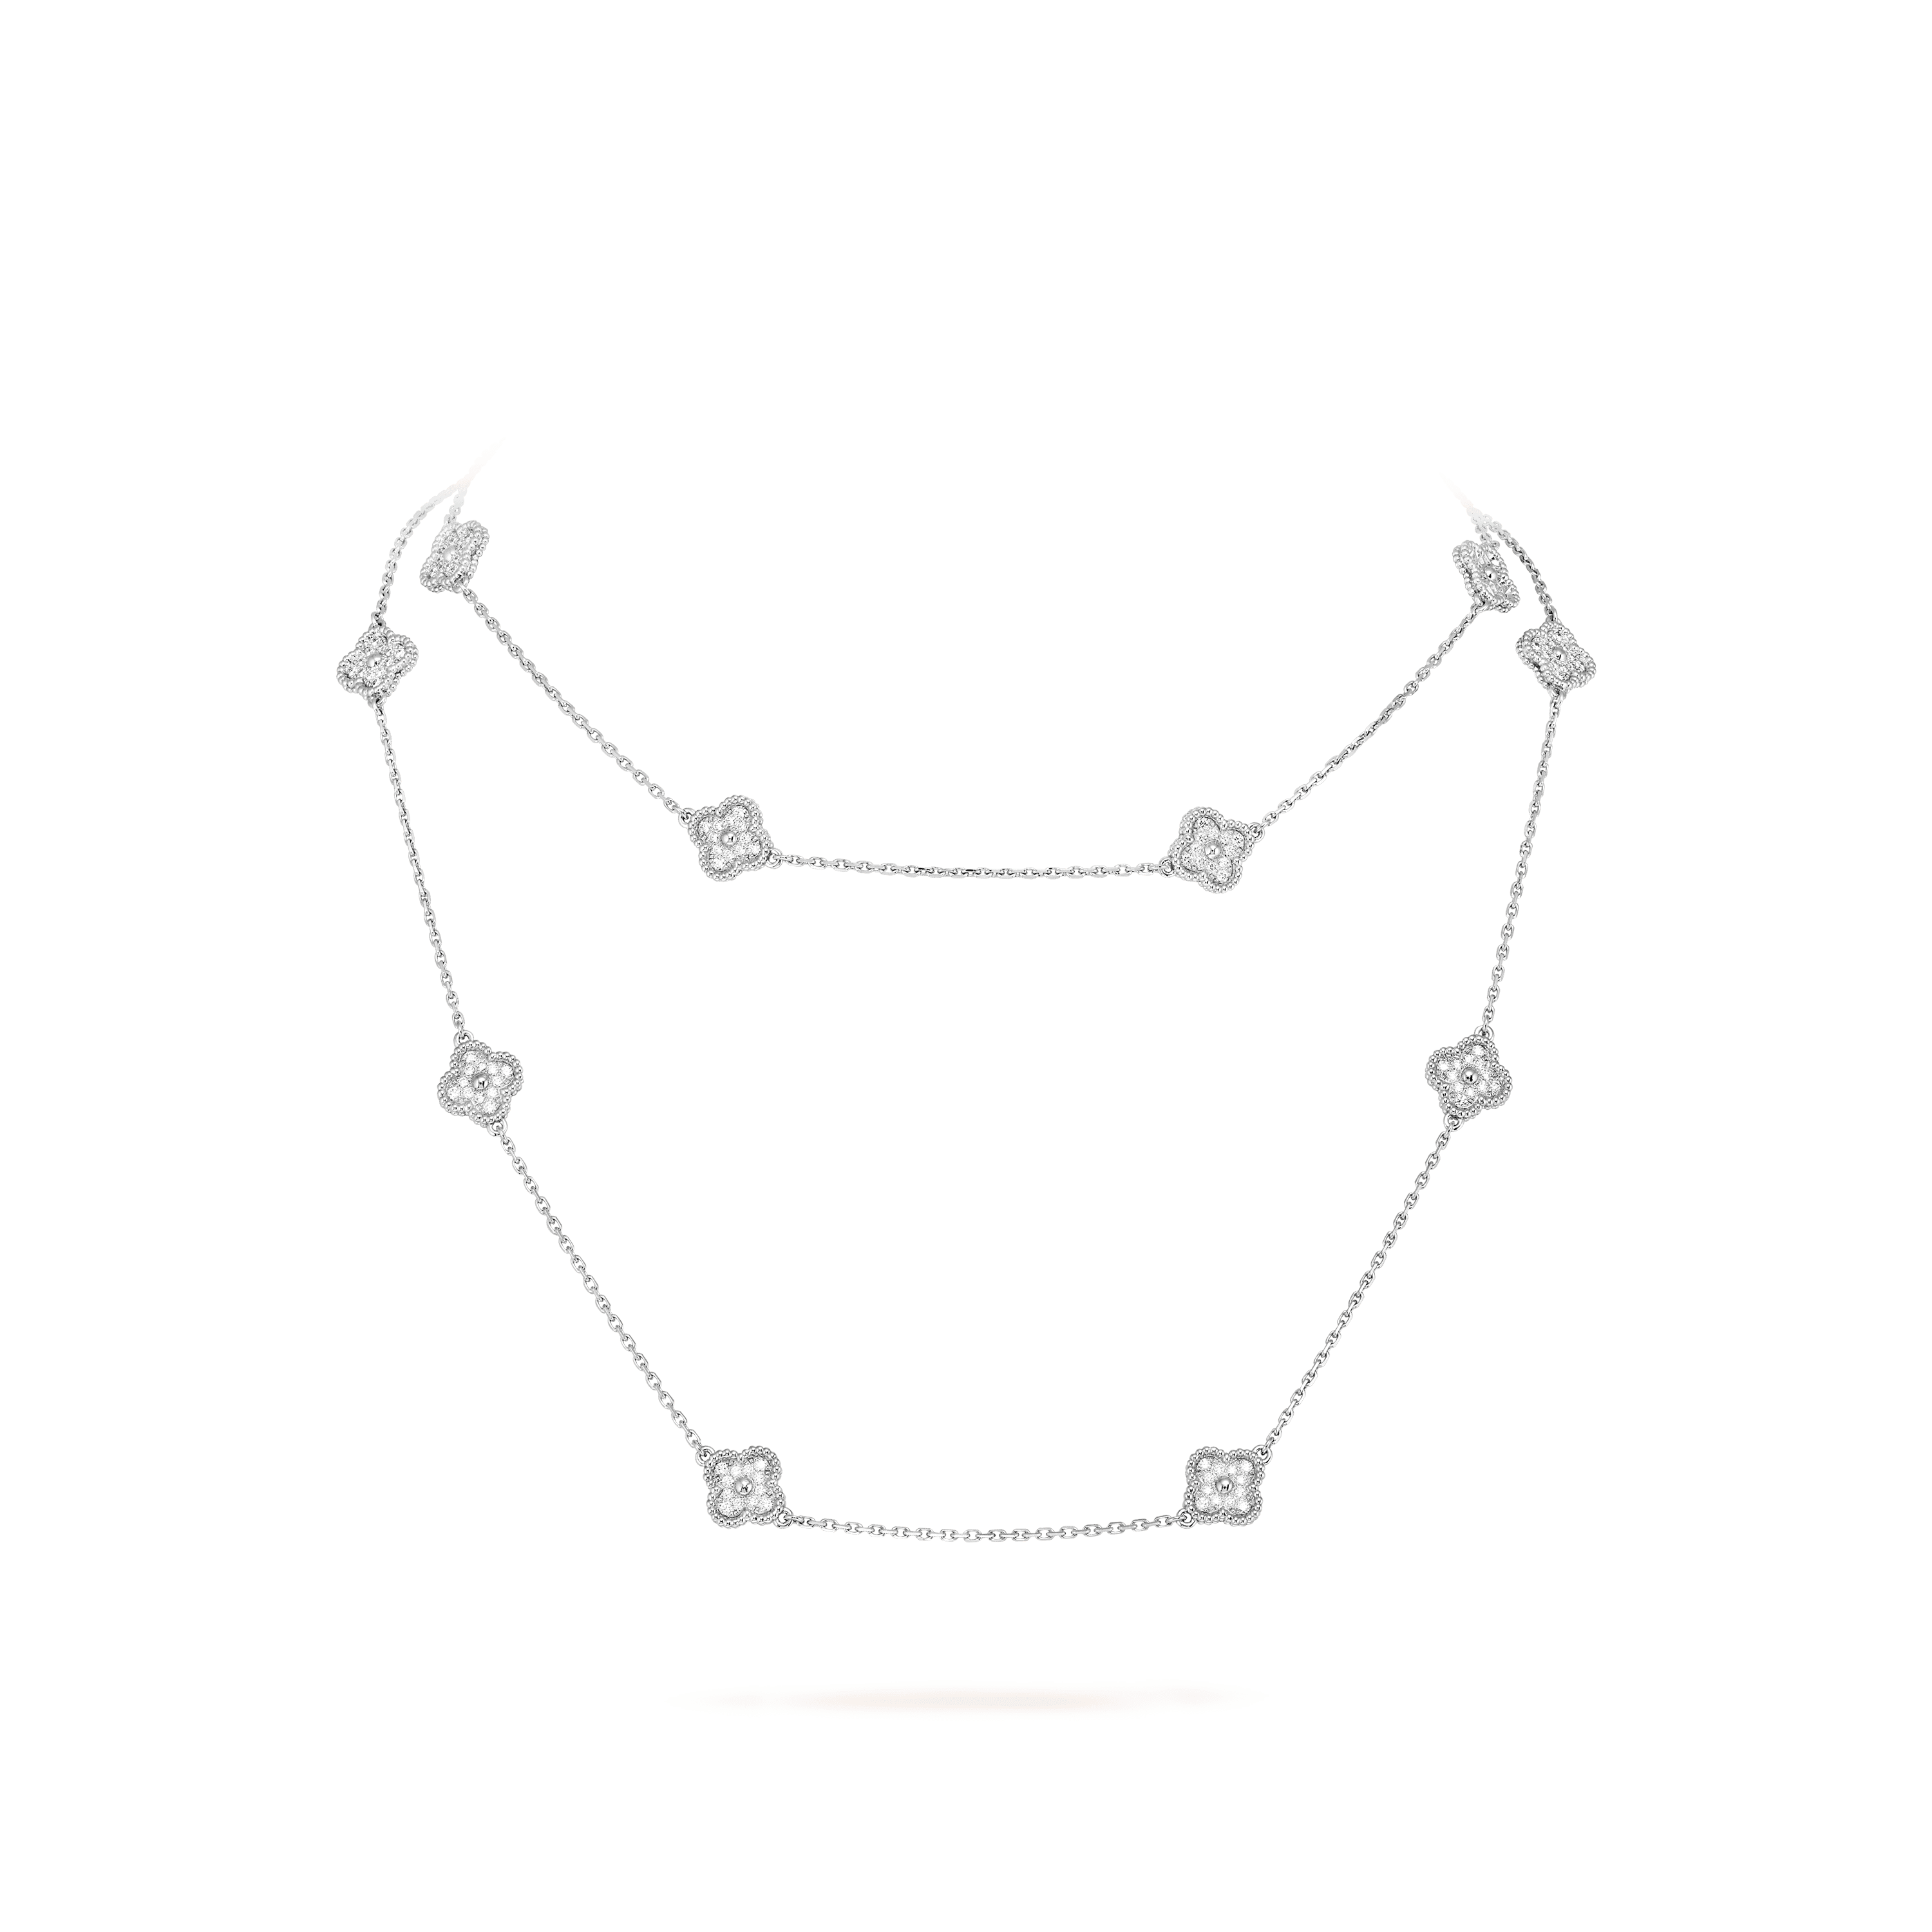 Sweet Alhambra long necklace, 16 motifs, - Detail View - VCARO85A00 - Van Cleef & Arpels